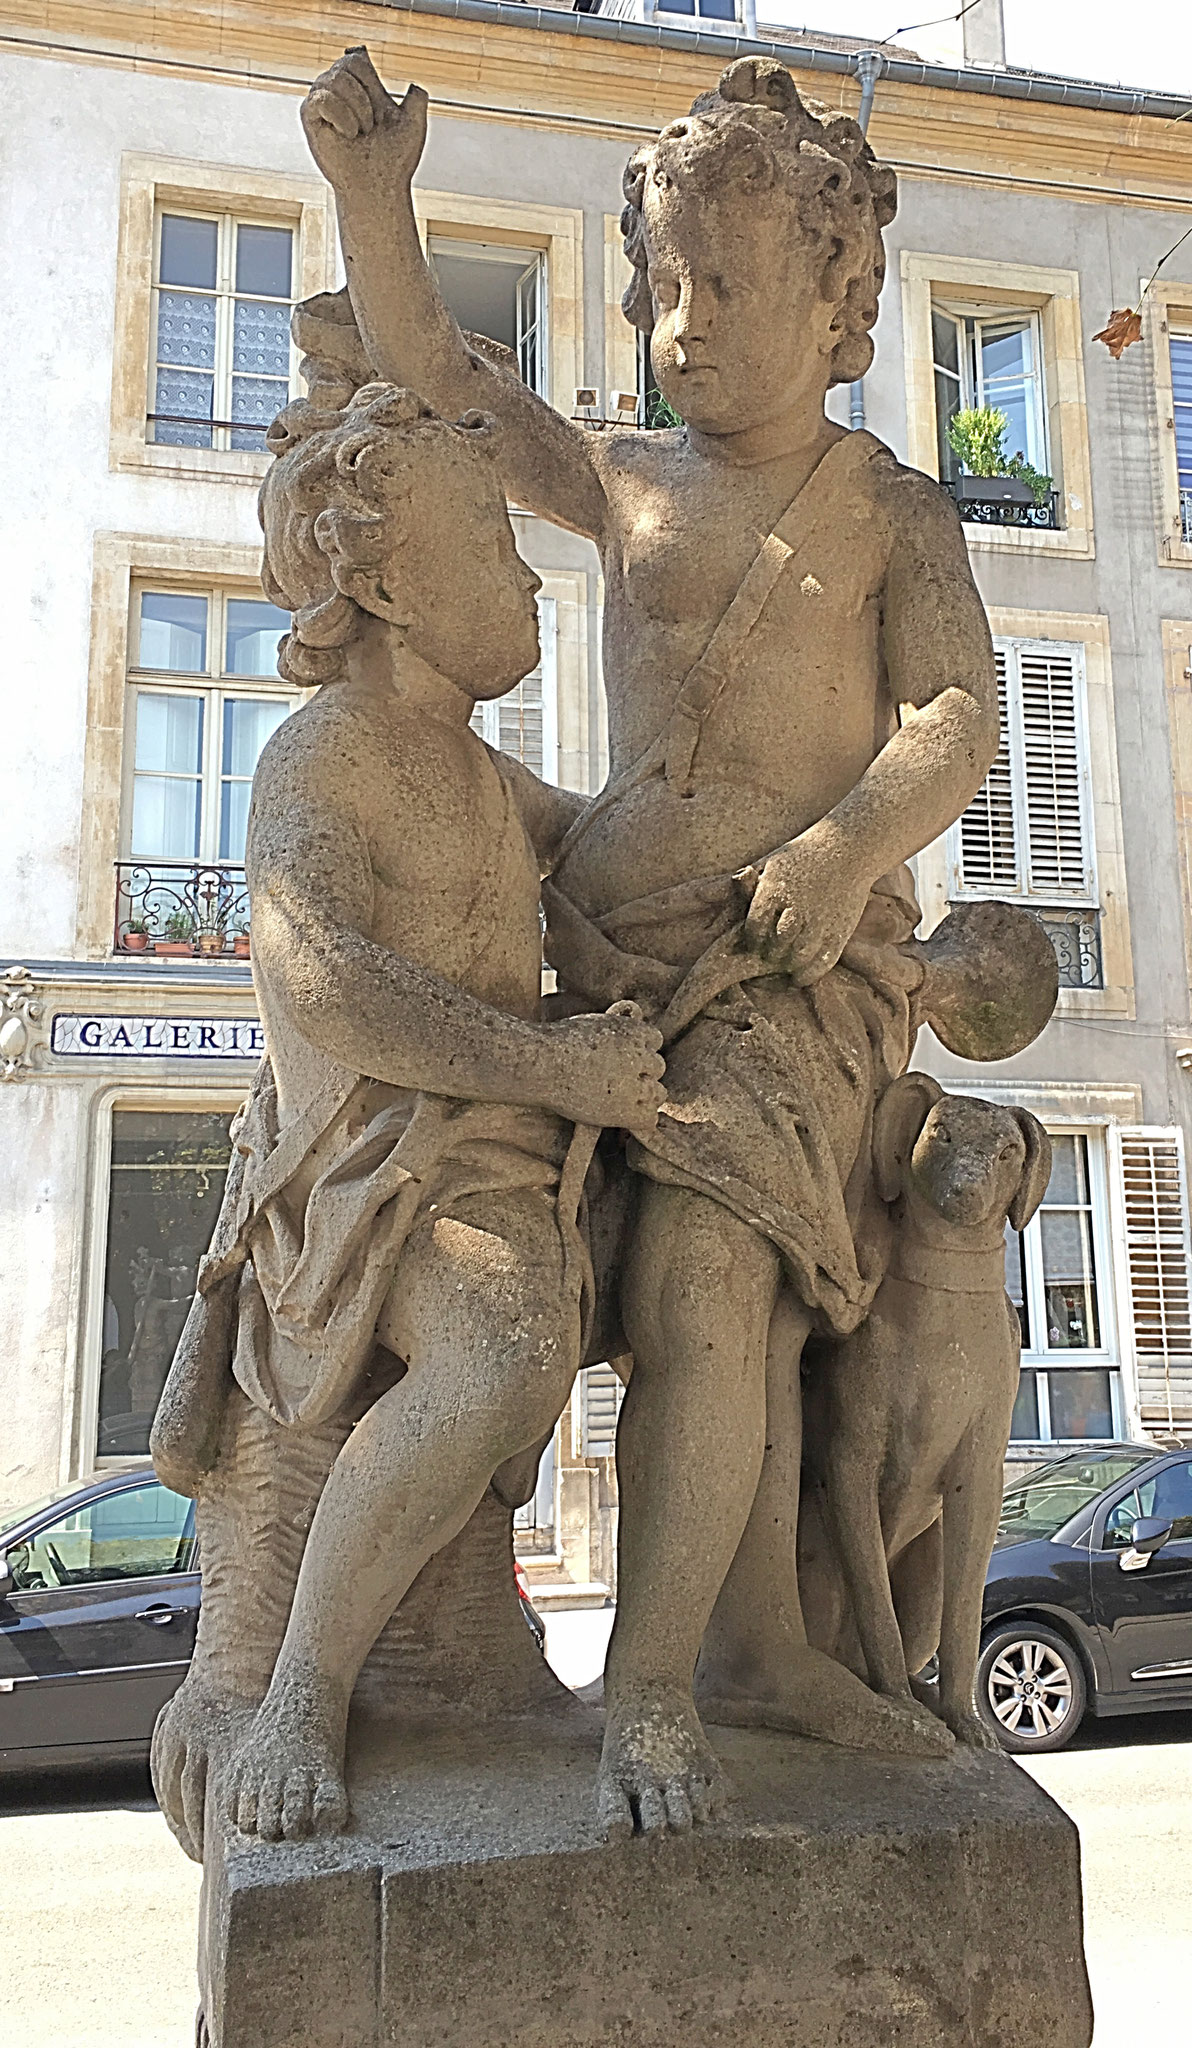 Figuren am Place de la Carièrre in Nancy